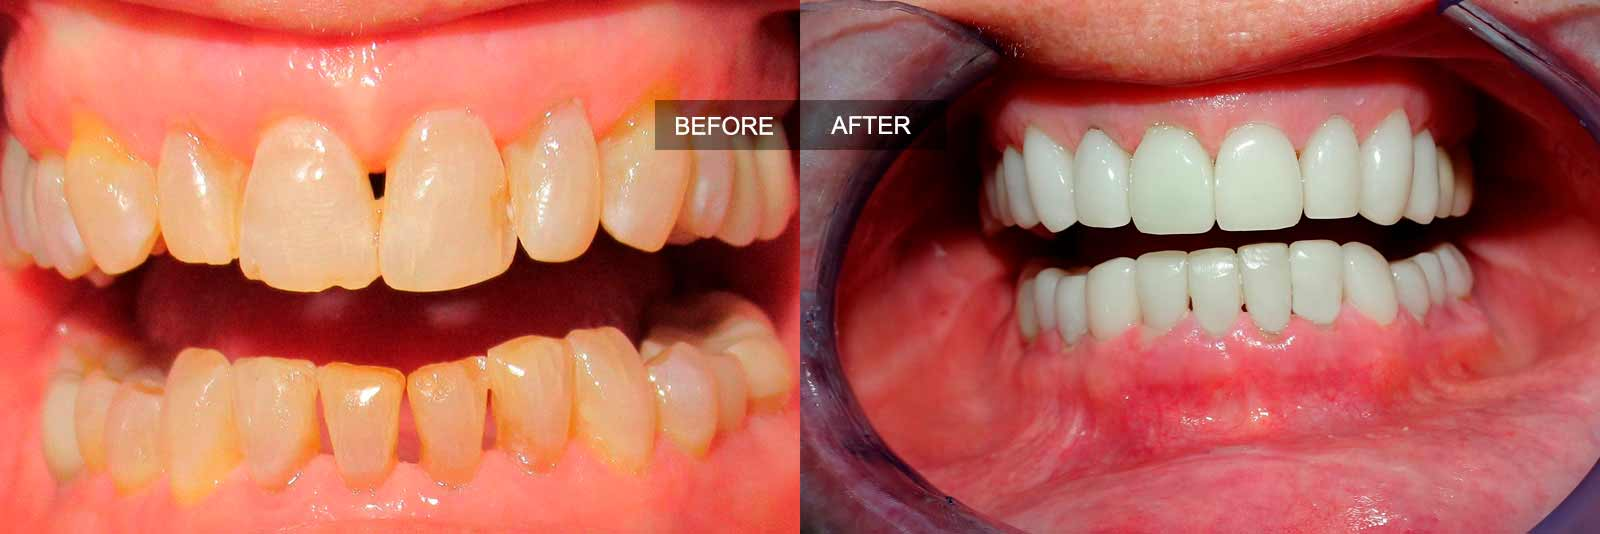 before and after of treatment full mouth restoration